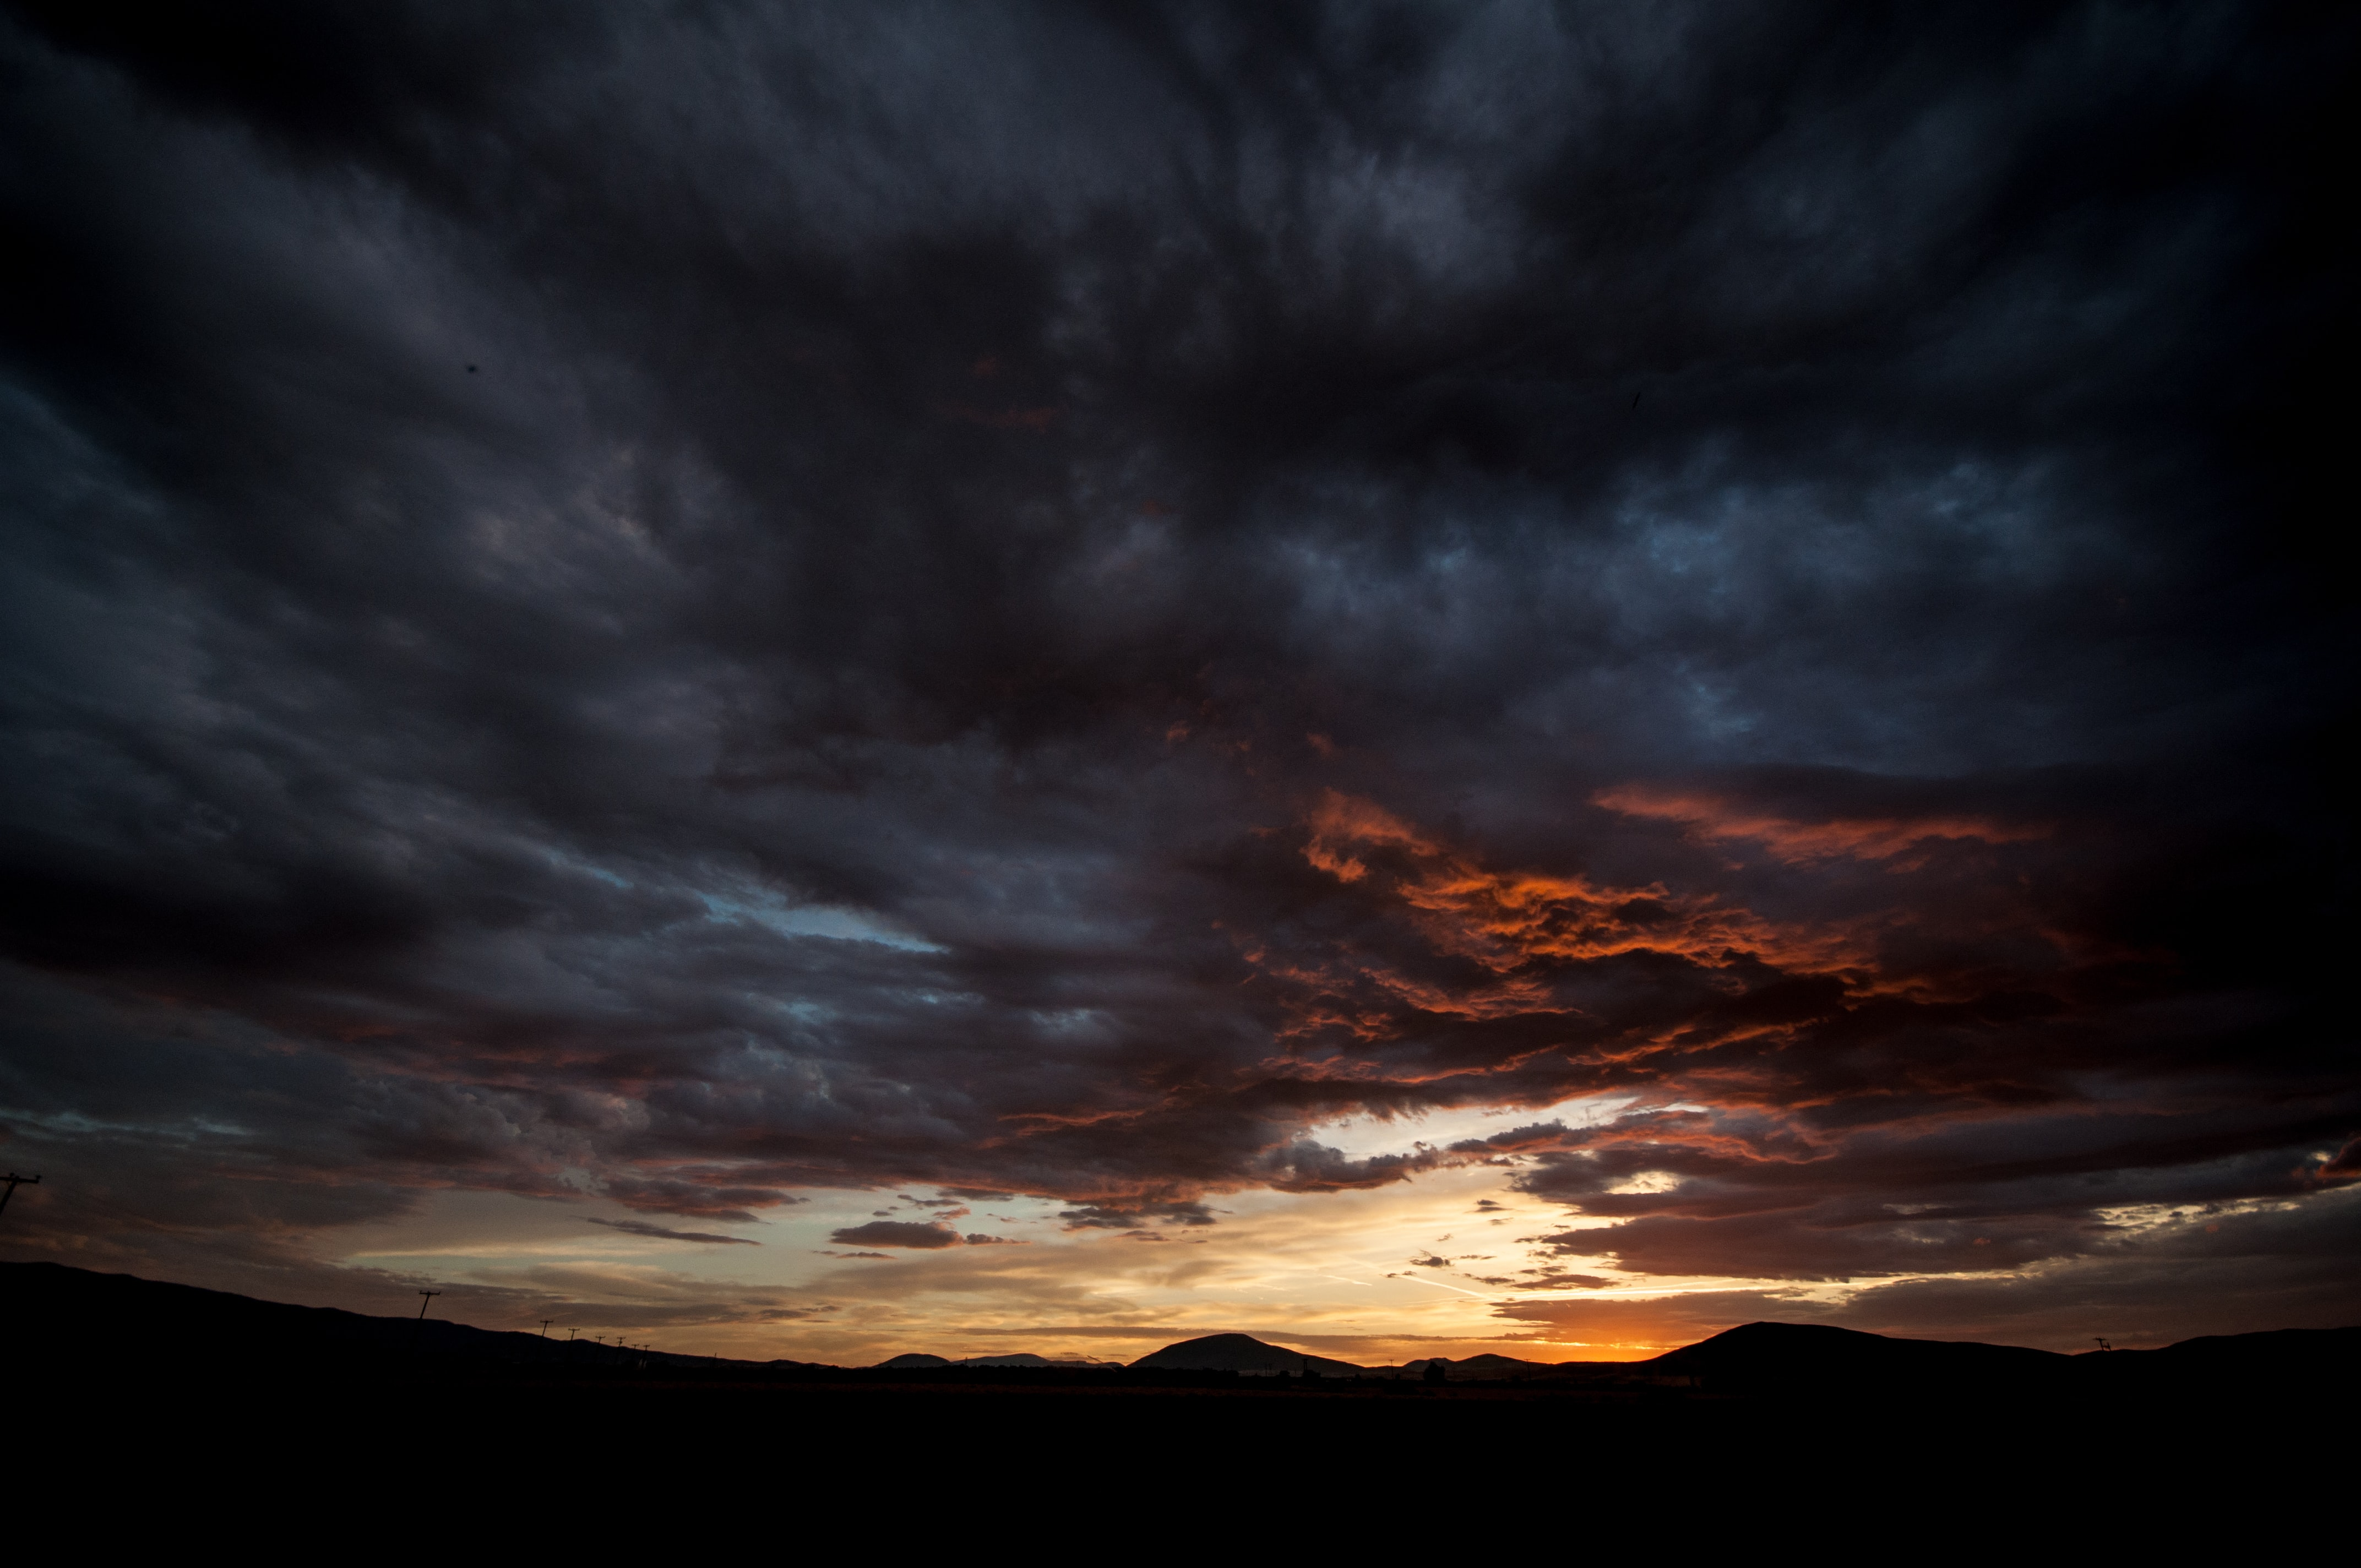 silhouette of mountains under cloudy sky